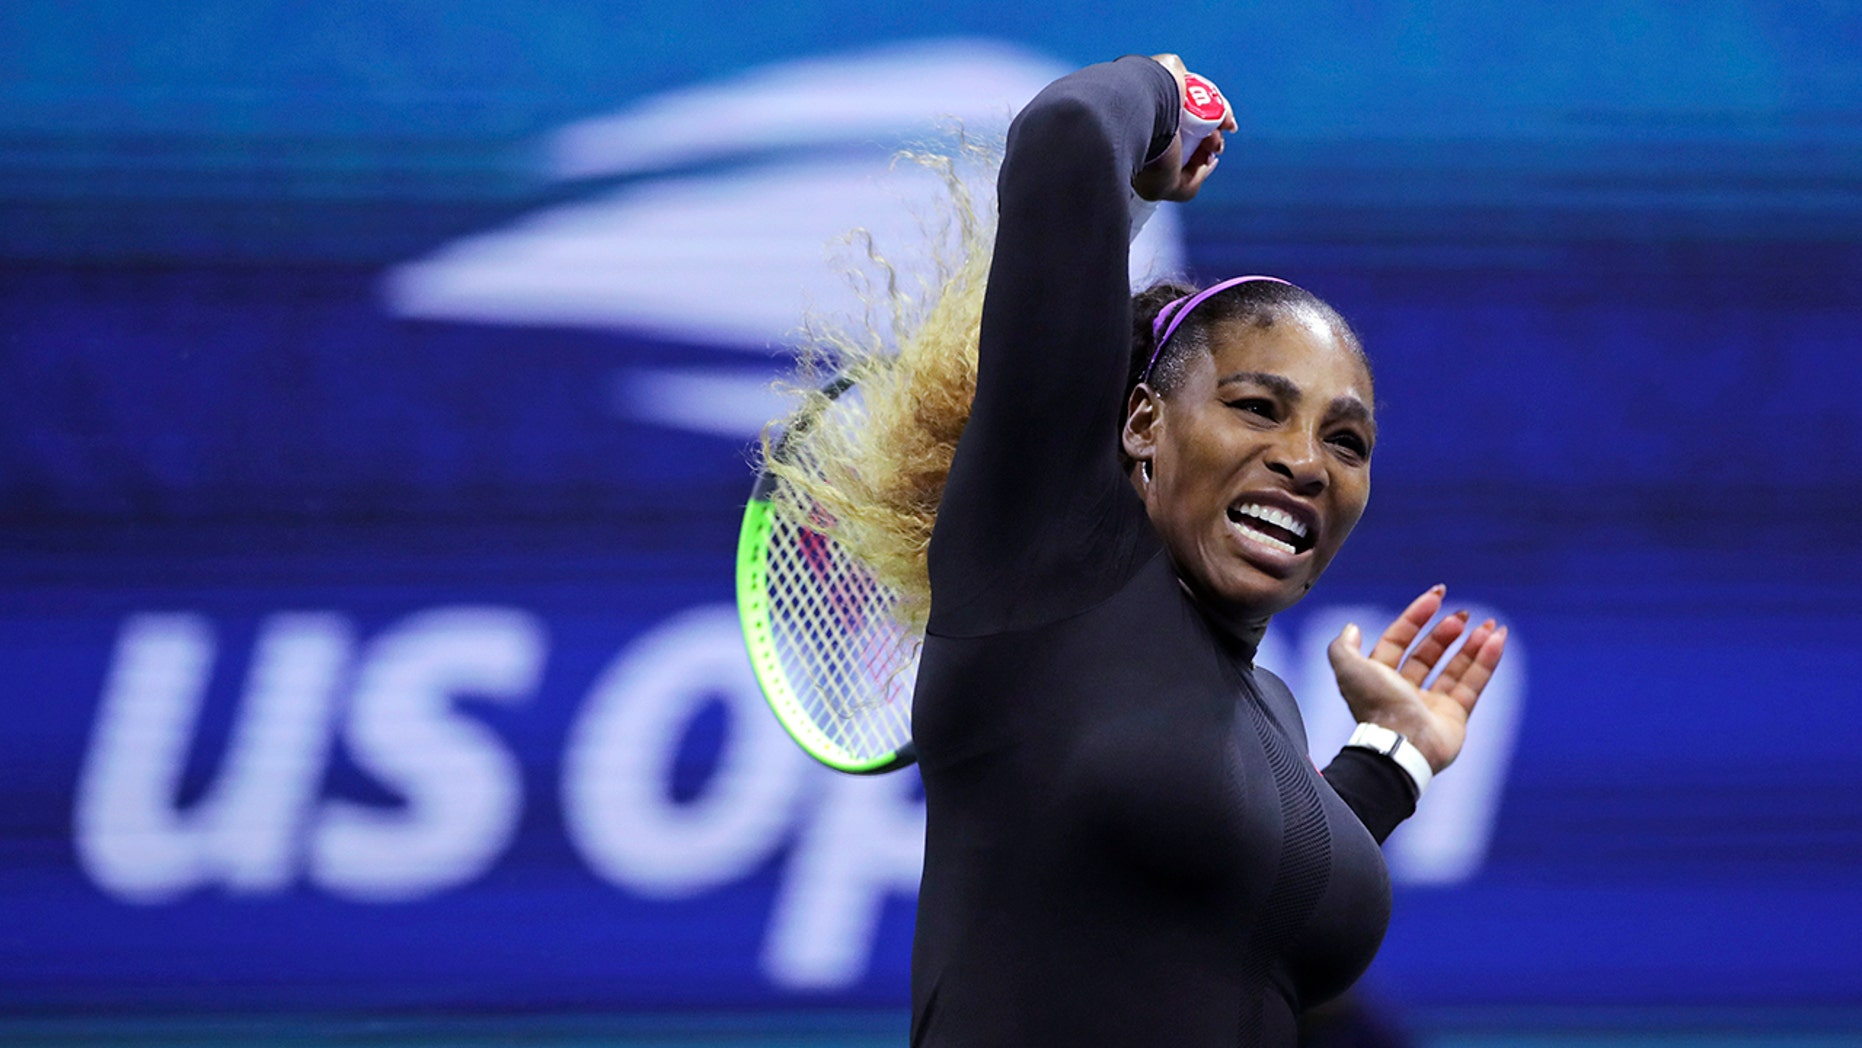 Westlake Legal Group TEN-Serena-Williams14 Serena, Djokovic, Federer face upstarts in US Open 2nd round fox-news/sports/tennis/us-open-tennis fox-news/sports/tennis fox-news/person/serena-williams fnc/sports fnc d4cd4ee5-68a4-5236-9279-2b5f575f05c8 Associated Press article